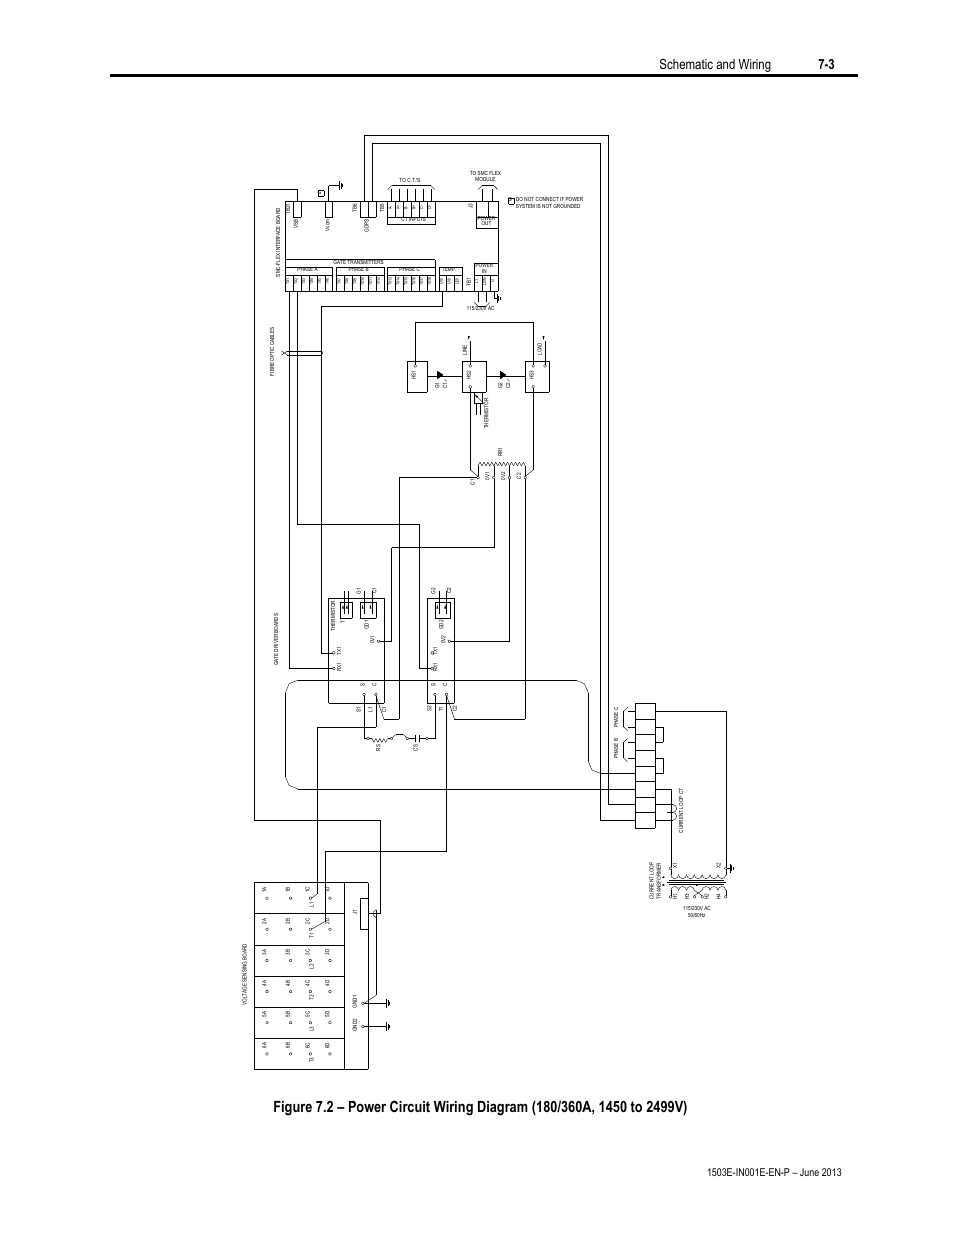 medium resolution of schematic and wiring 7 3 rockwell automation mv smc flex oem components user manual